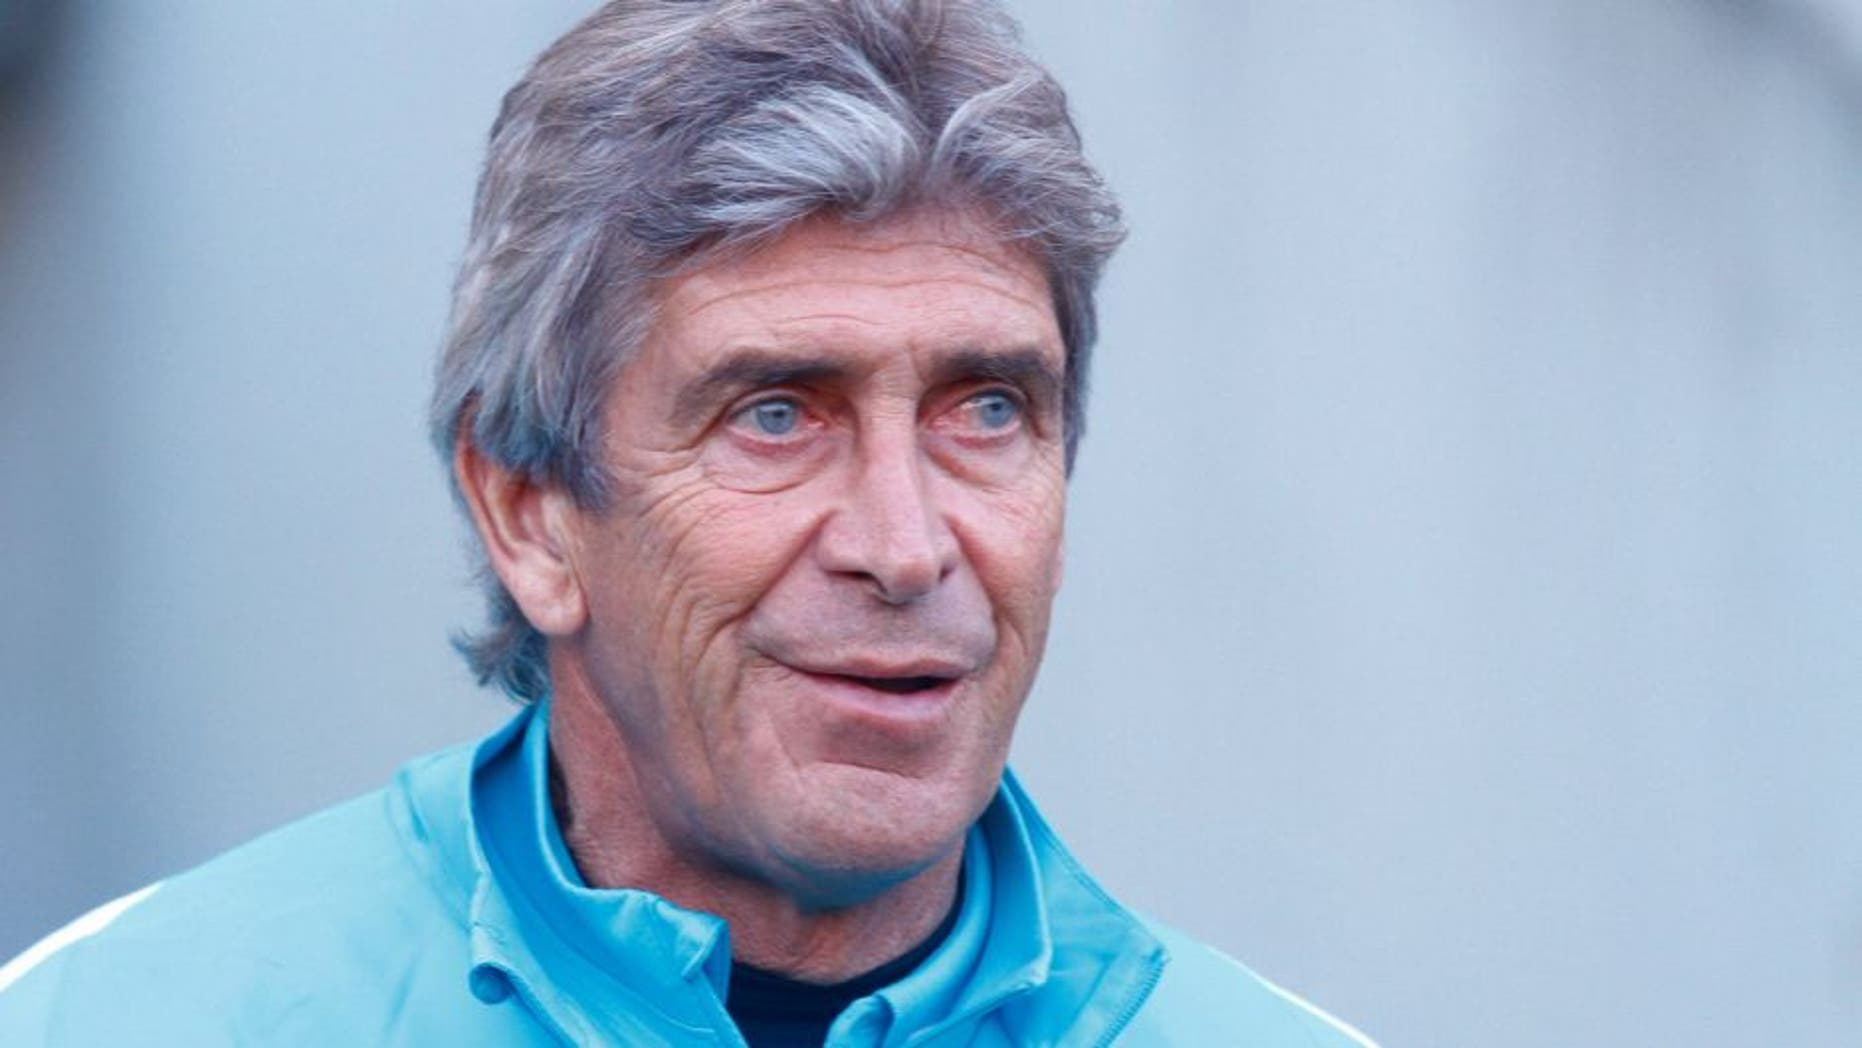 Manchester City coach Manuel Pellegrini watches his team warm up before the friendly football match between English Premier League side Manchester City and A-League side Melbourne City at Cbus Super Stadium on the Gold Coast on July 18, 2015. AFP PHOTO / JOHN PRYKE -- IMAGE RESTRICTED TO EDITORIAL USE - STRICTLY NO COMMERCIAL USE (Photo credit should read JOHN PRYKE/AFP/Getty Images)